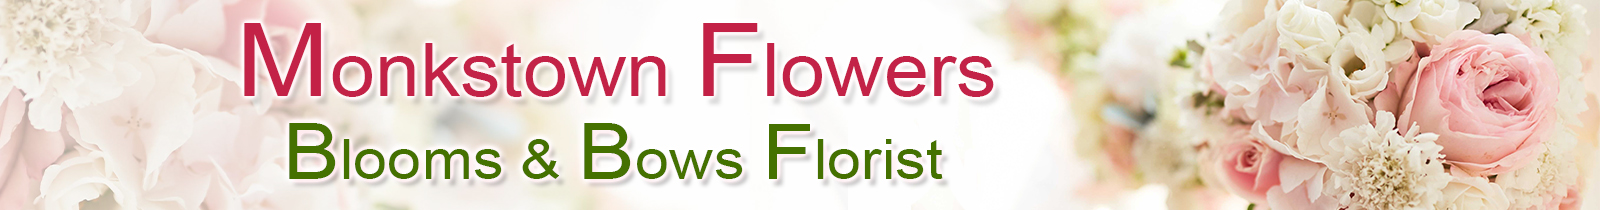 Monkstown Flowers - Monkstown Blackrock Dun Laoghaire Booterstown Flower Delivery